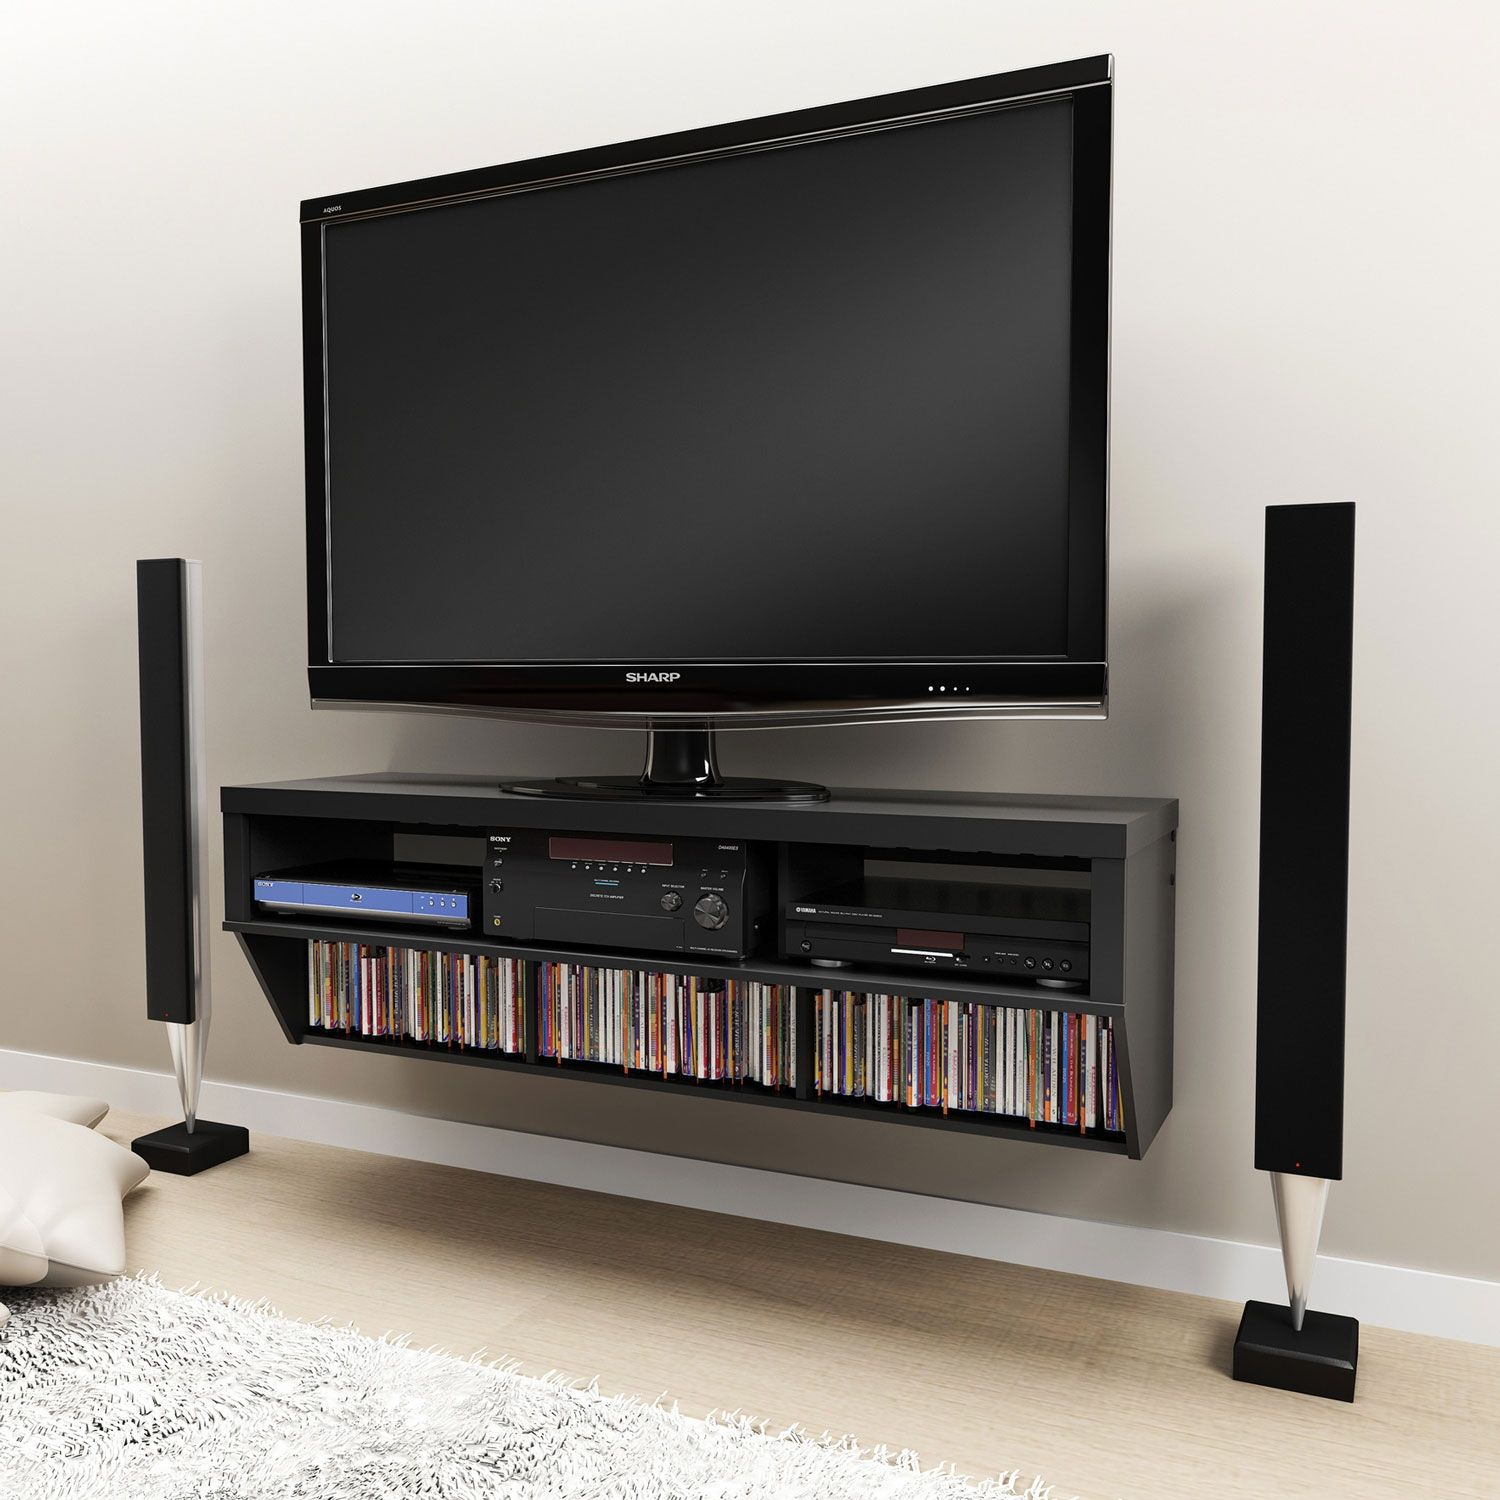 Wall mounted entertainment center media console